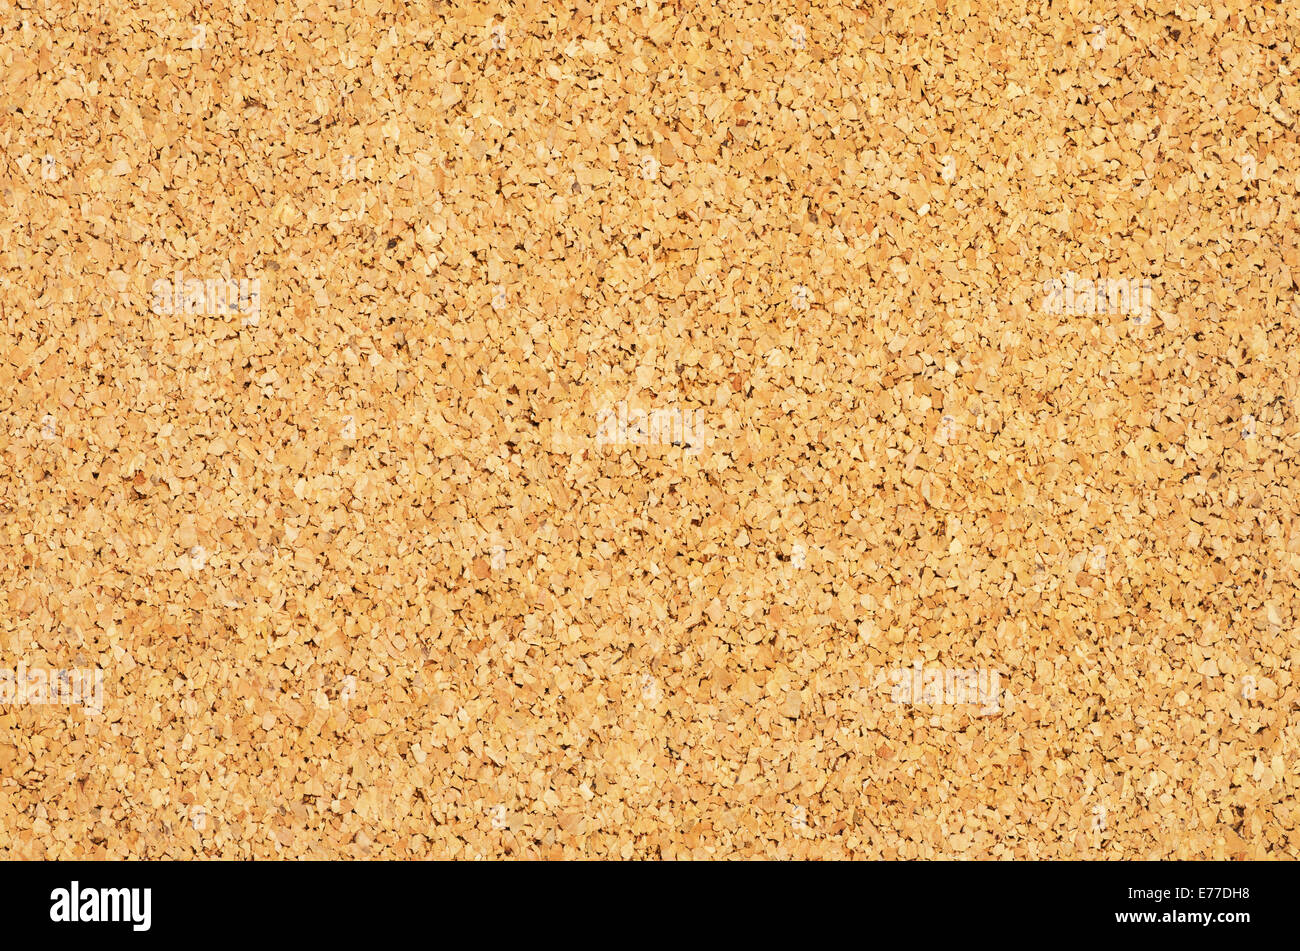 cork pin board background texture - Stock Image